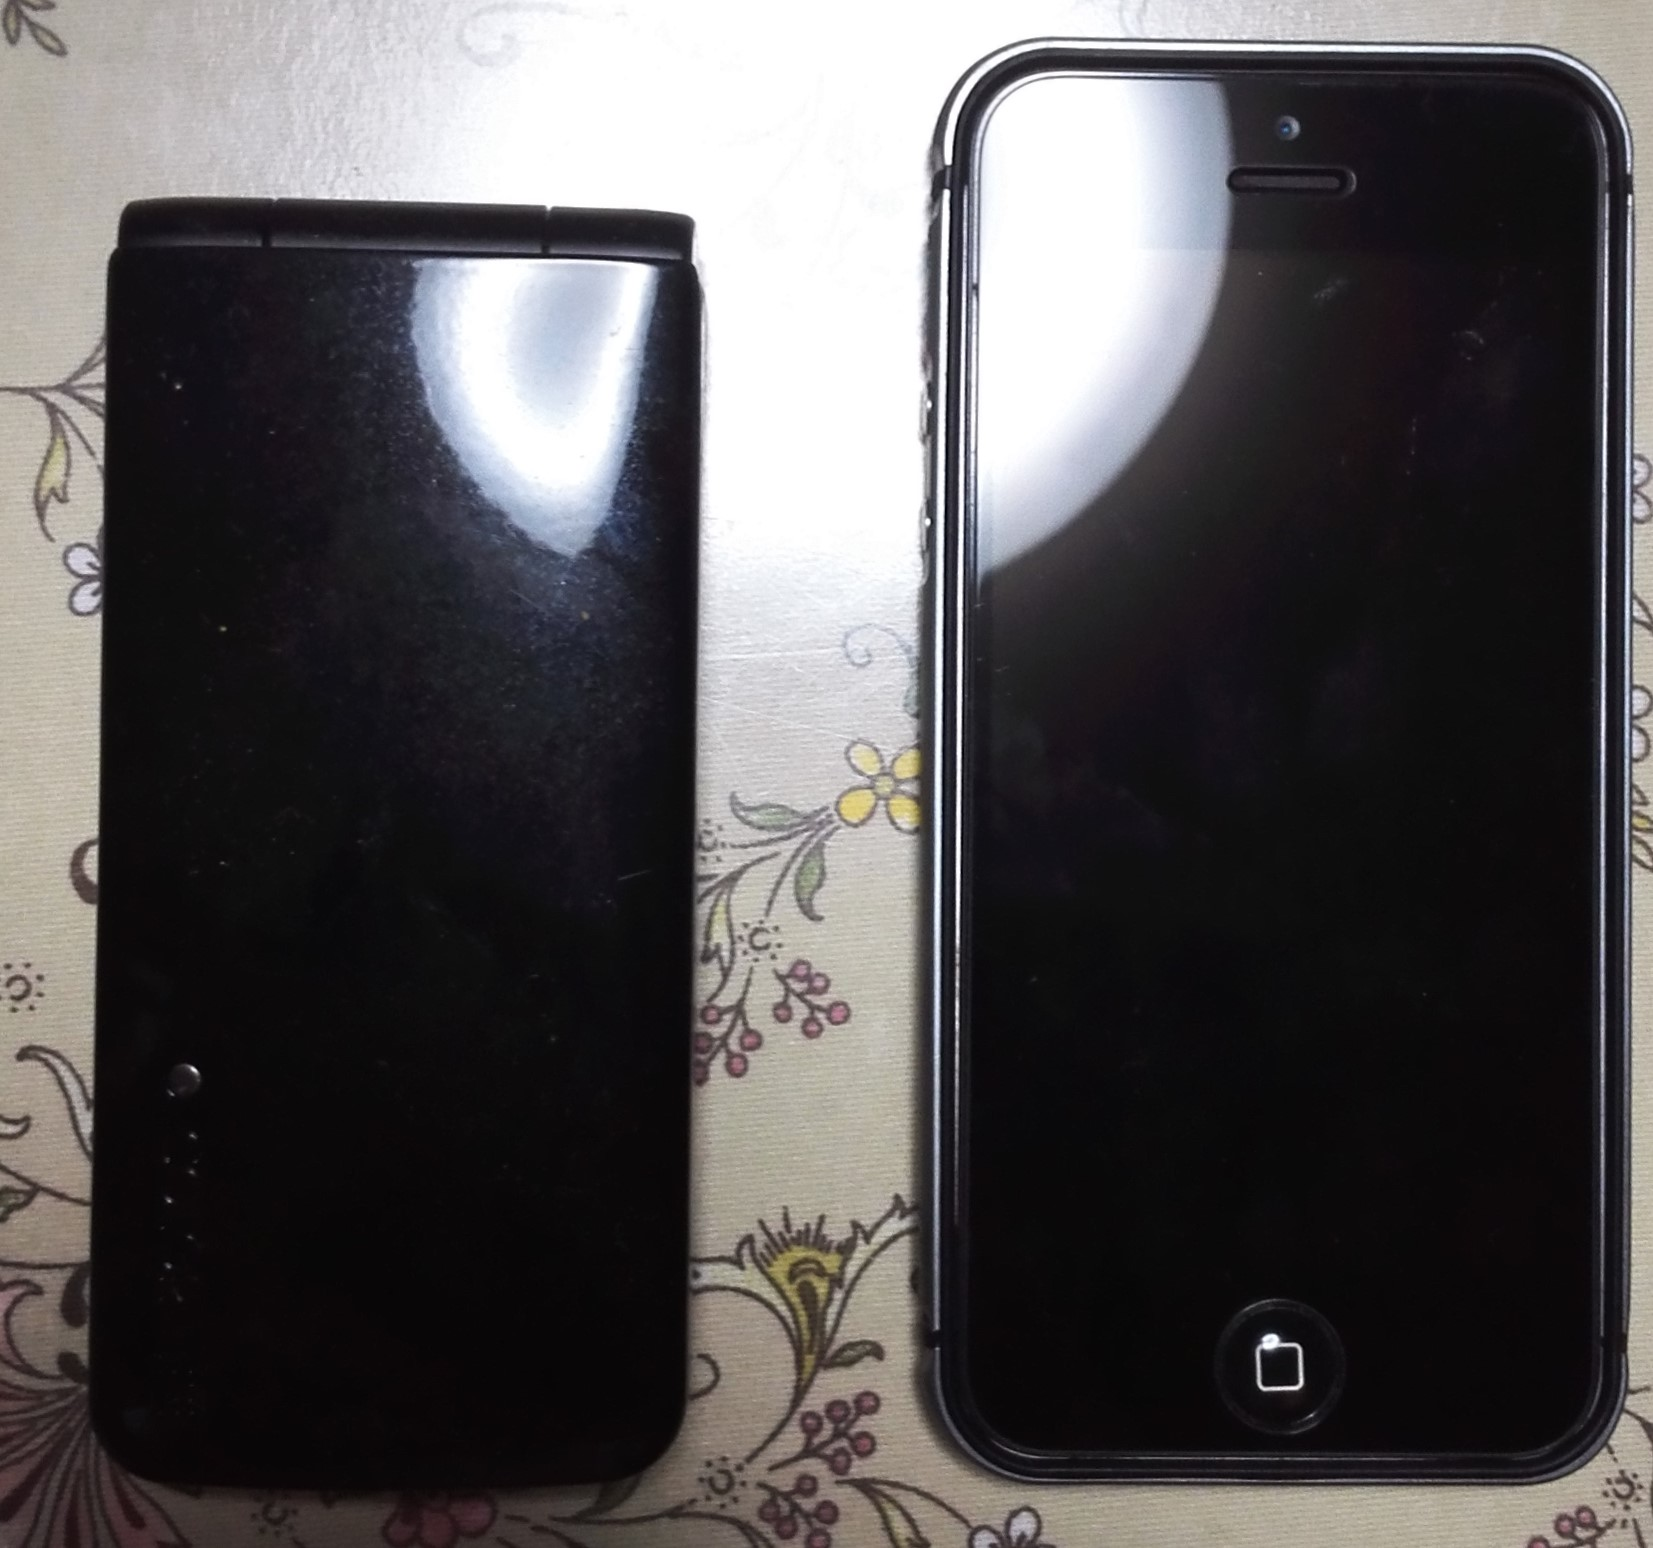 103PとiPhone5s